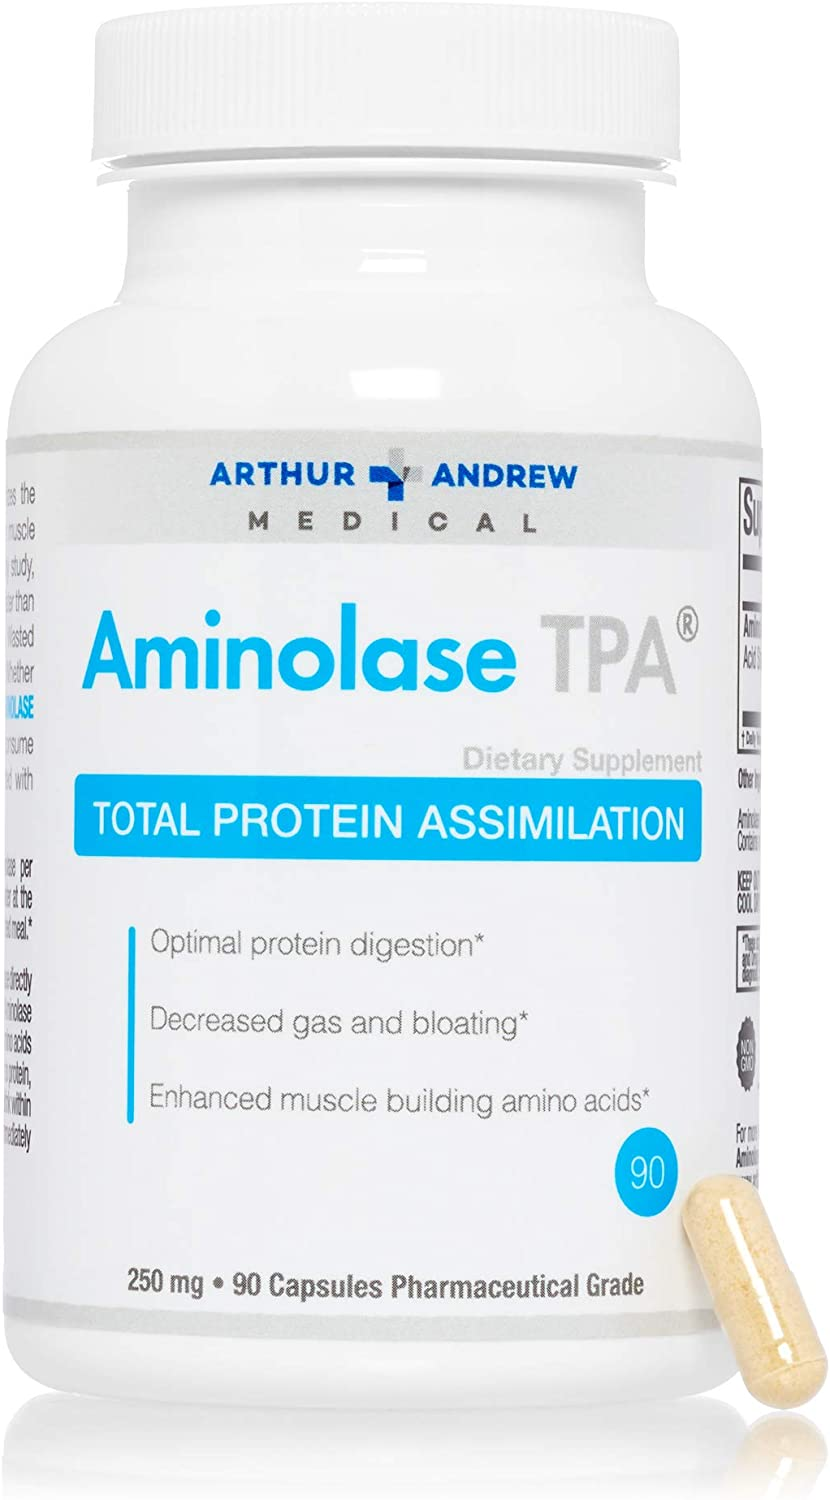 Arthur Andrew Medical - Aminolase TPA, Total Protein Assimilation, Optimal Protein Absorption and Decreased Gas and Bloating, Vegan, Non-GMO, 90 Capsules